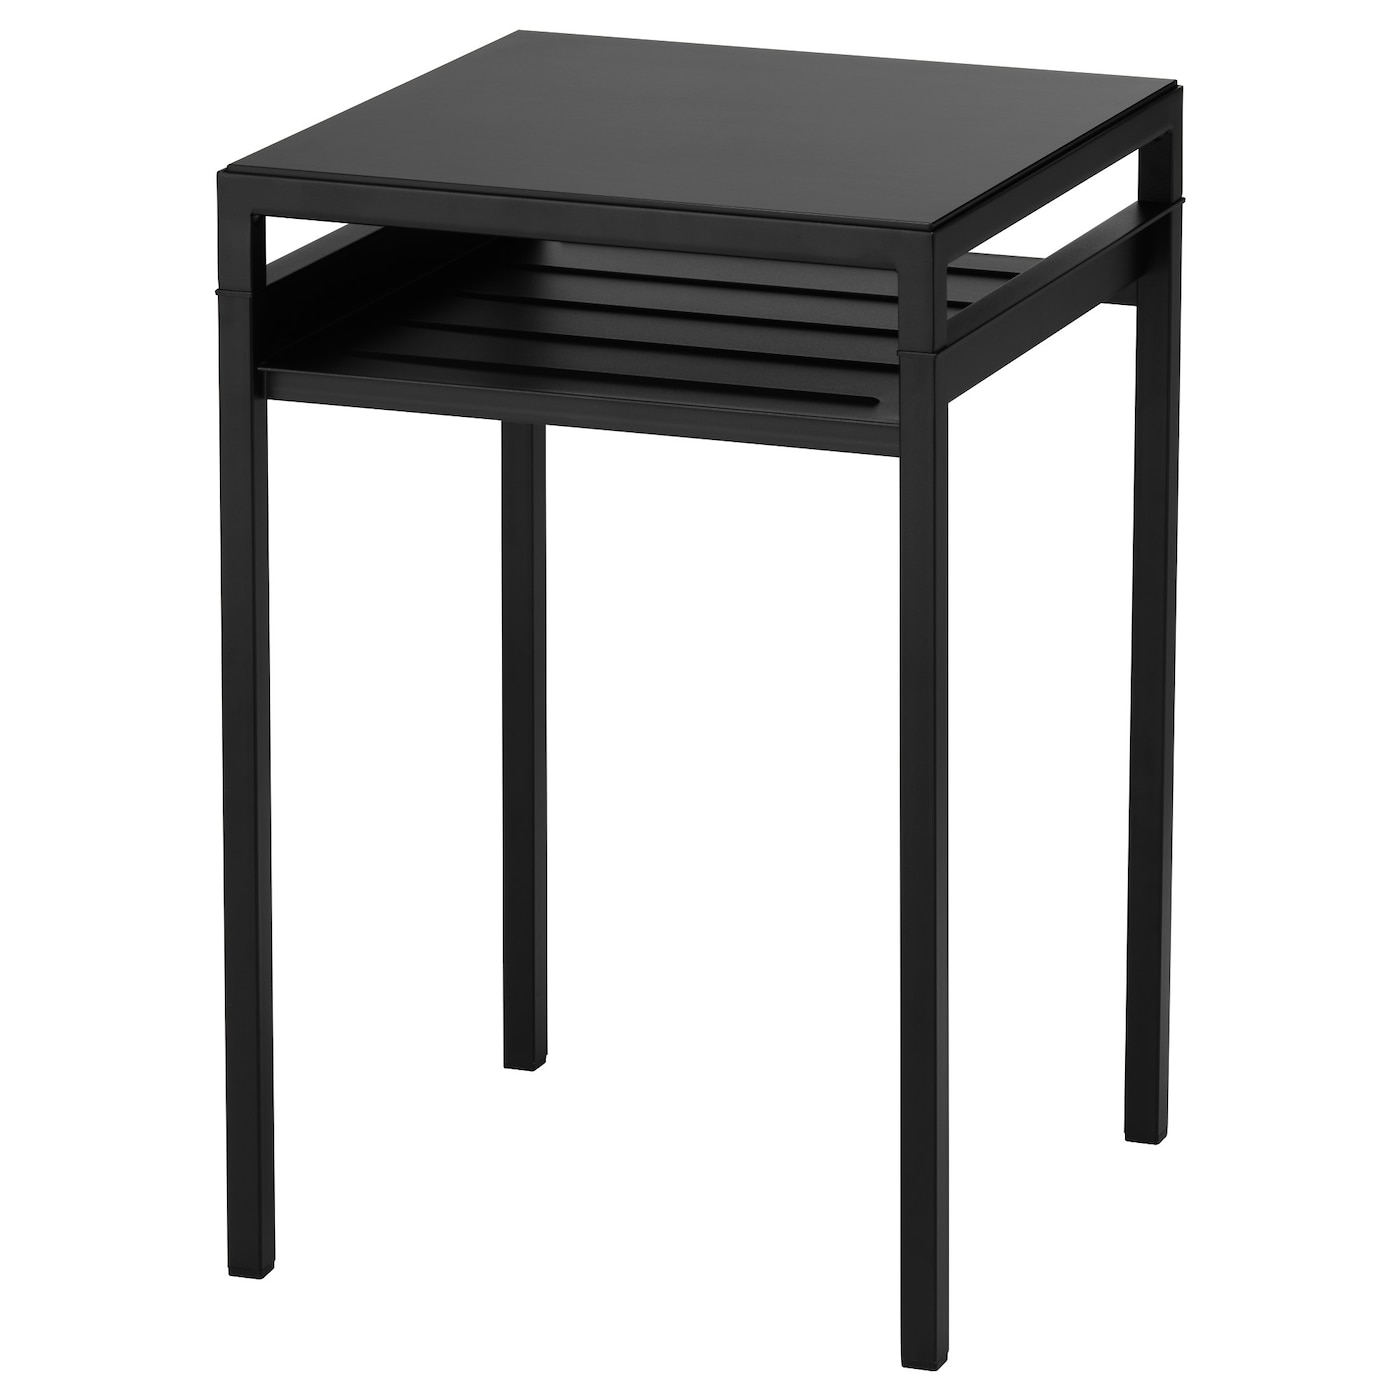 NYBODA Side table w reversible table top Black beige 40x40x60 cm